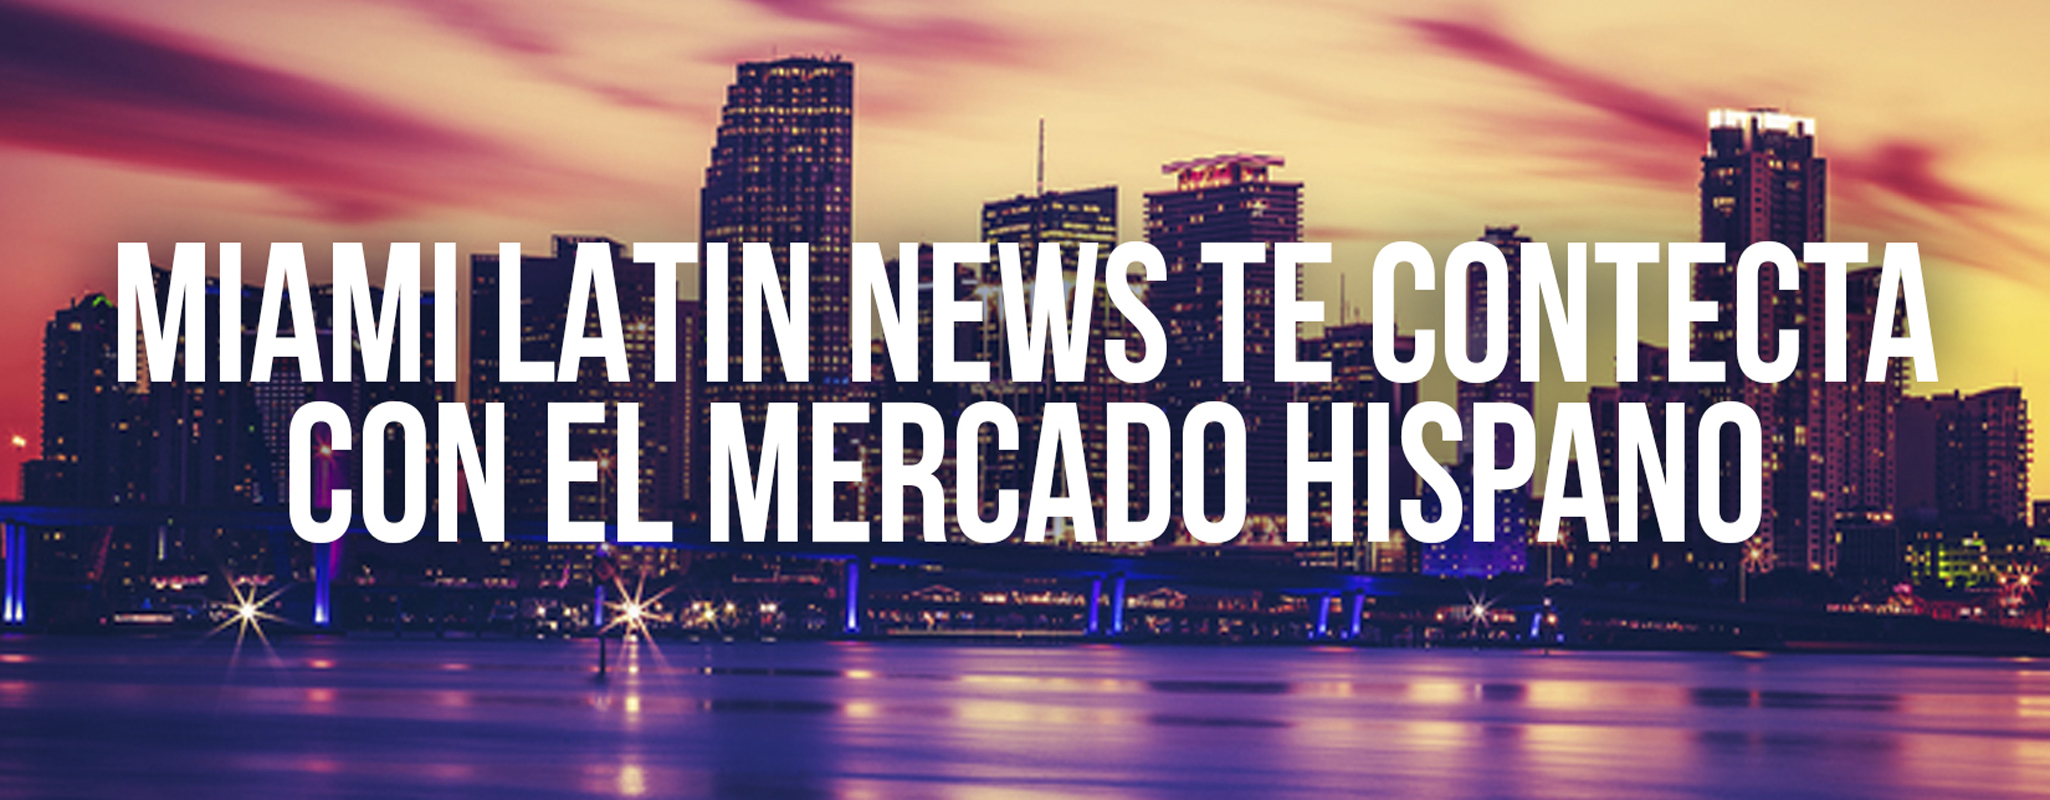 MIAMI LATIN NEWS 3.jpg